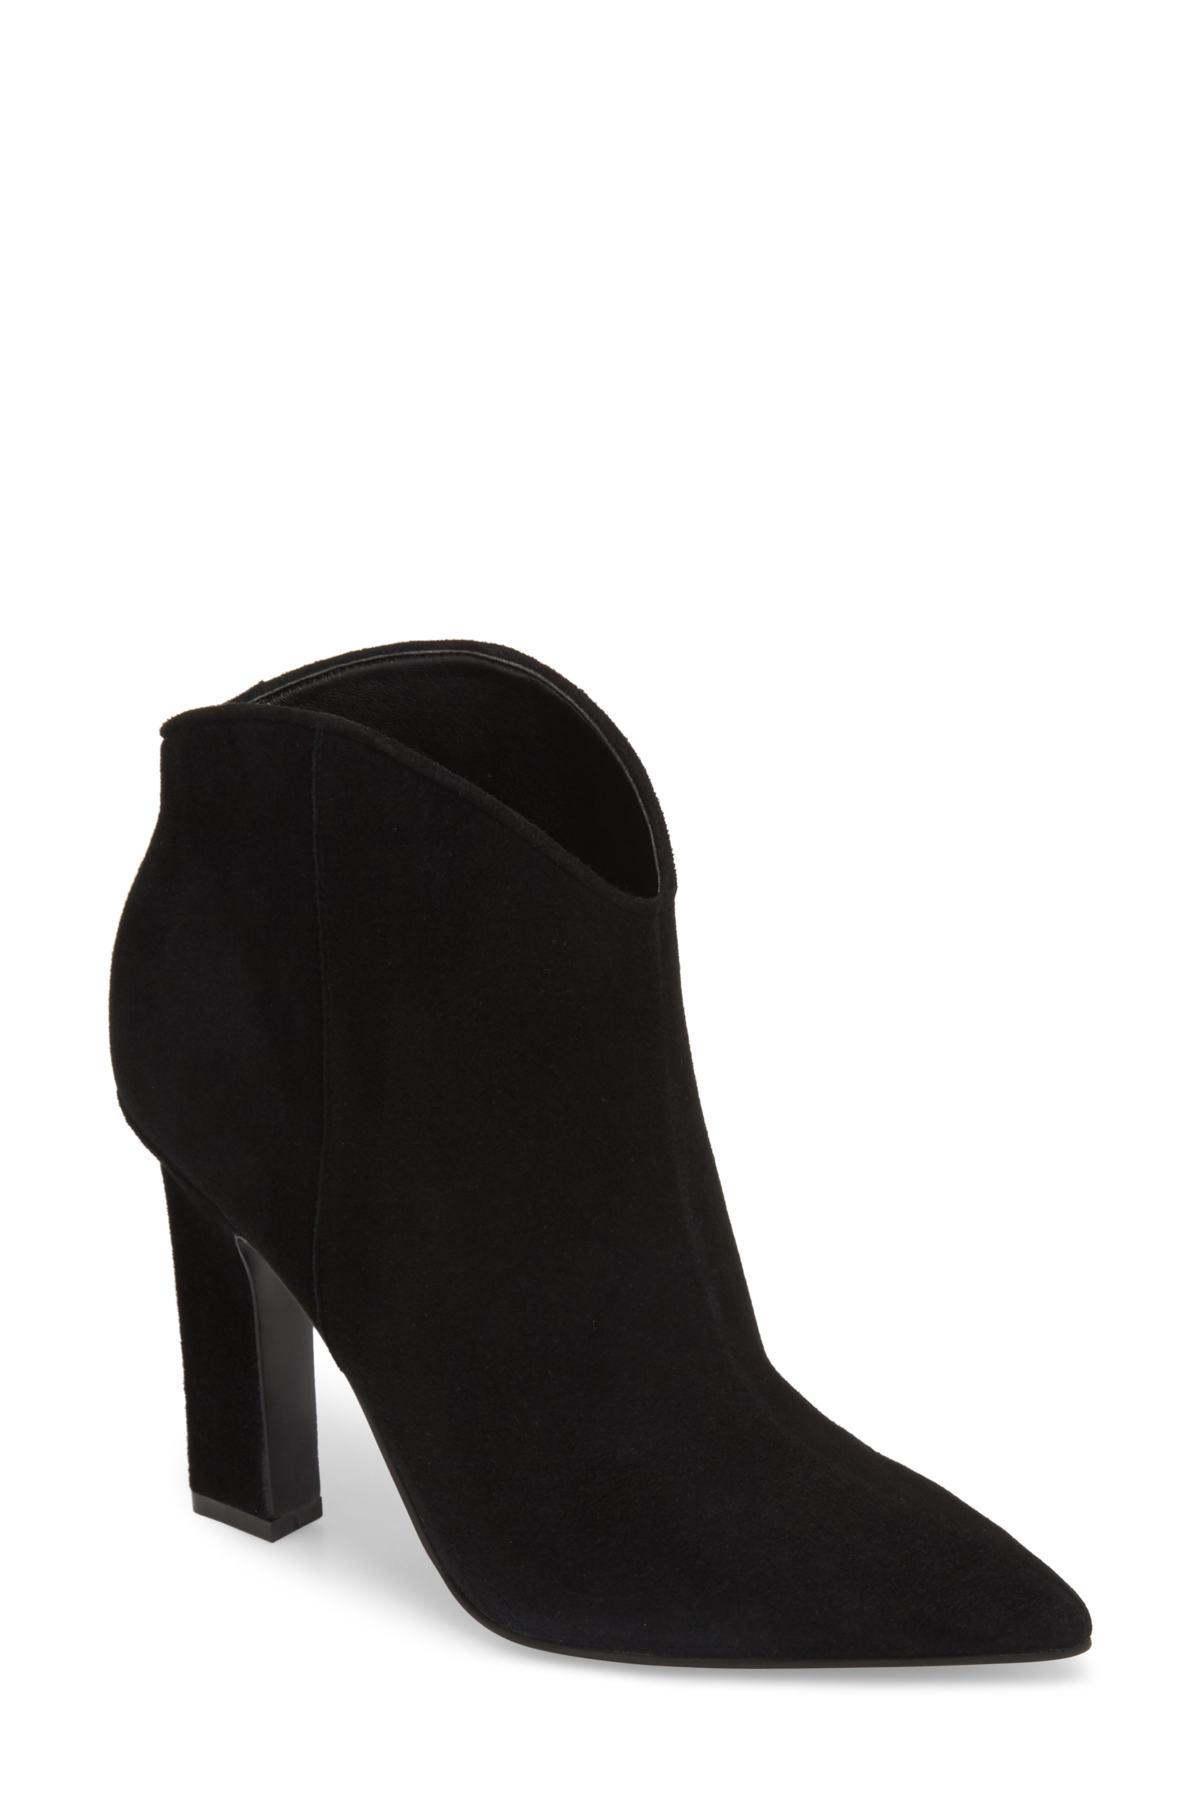 9c45bb41302 Lyst - Marc Fisher Miggi Bootie in Black